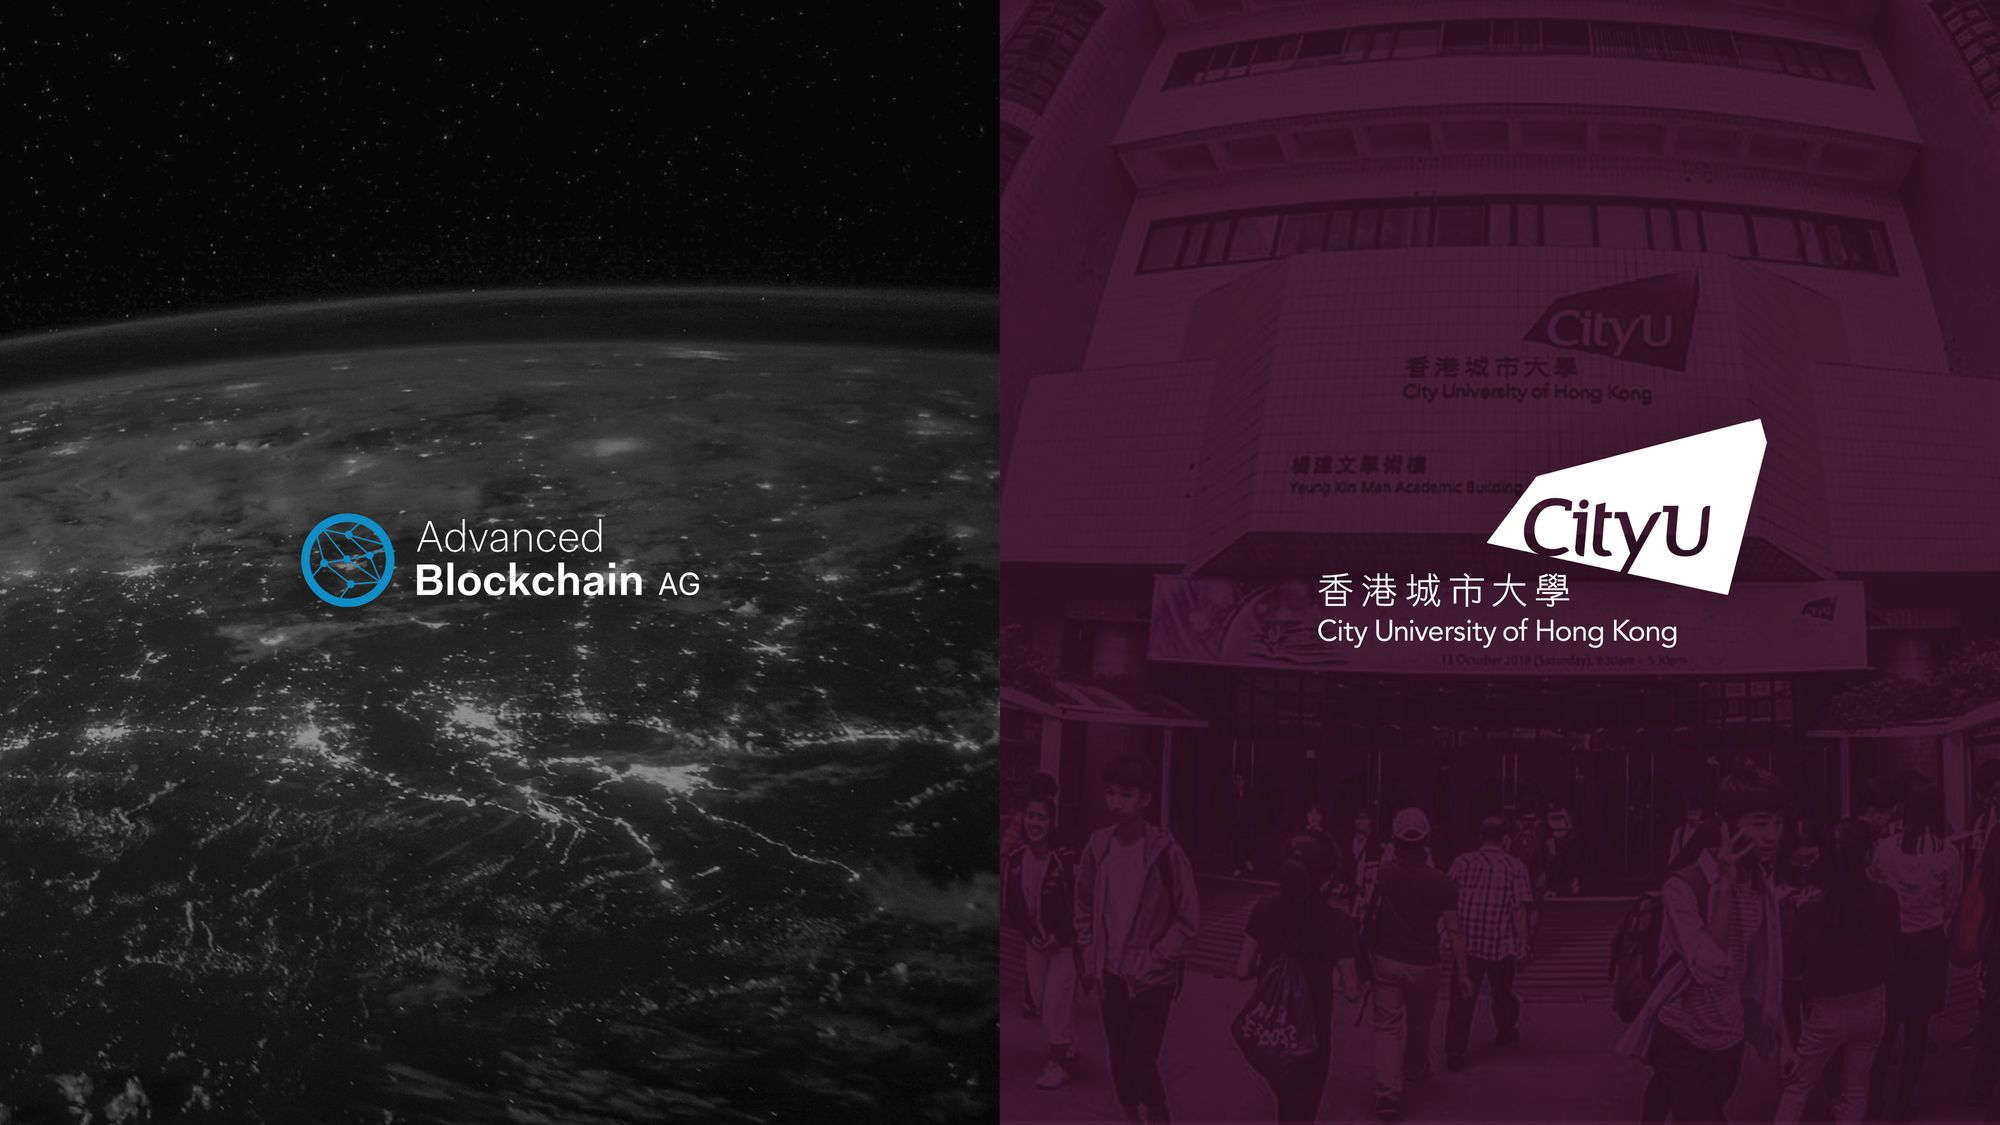 Advanced  Blockchain AG announces collaboration with City University of Hong Kong